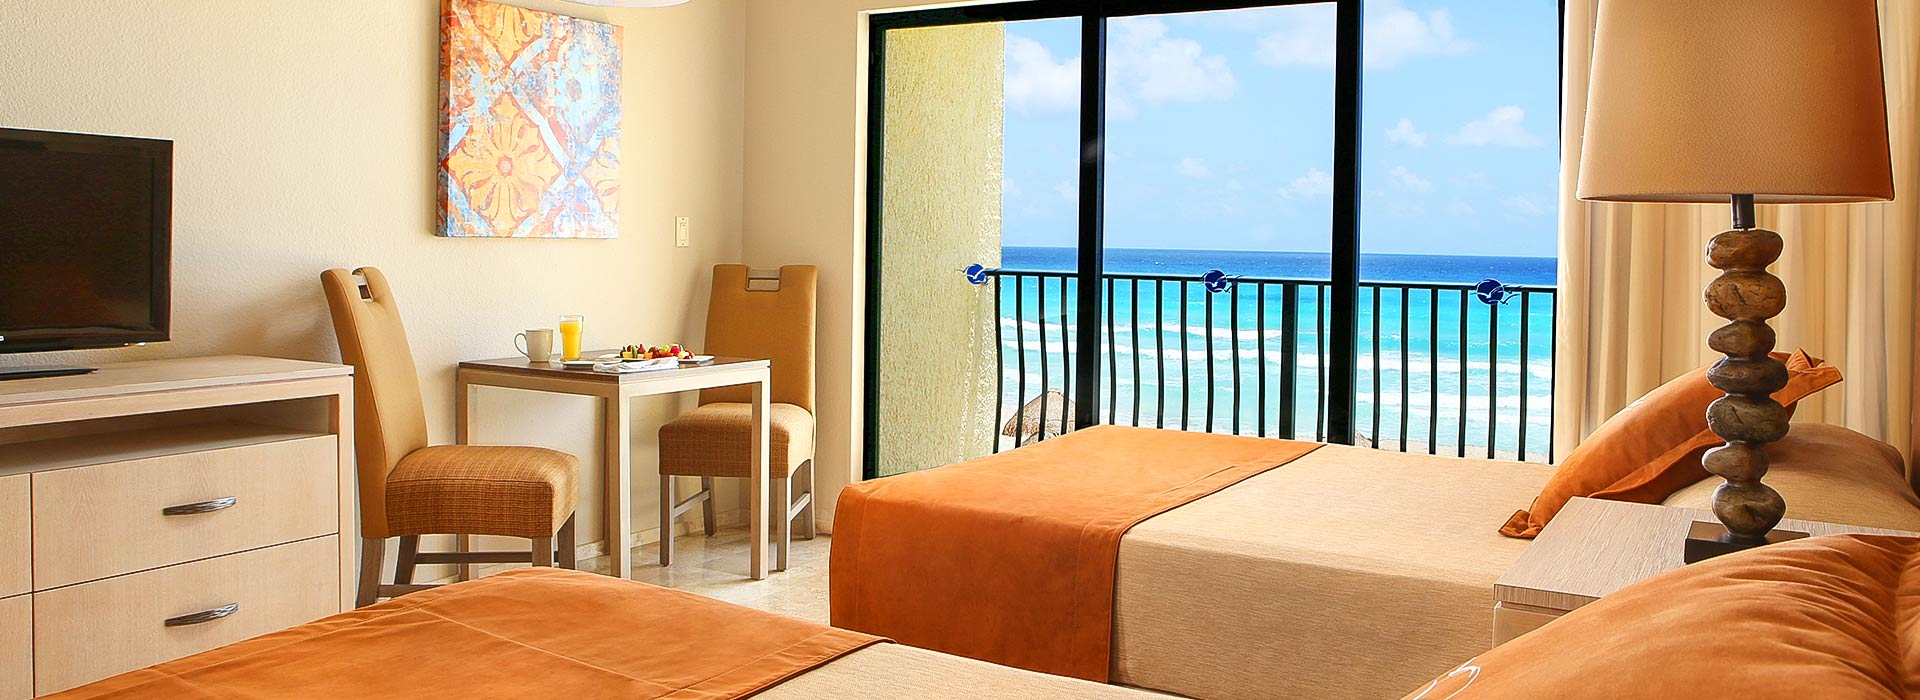 Beachfront Junior suite with double beds in Cancun beachfront resort